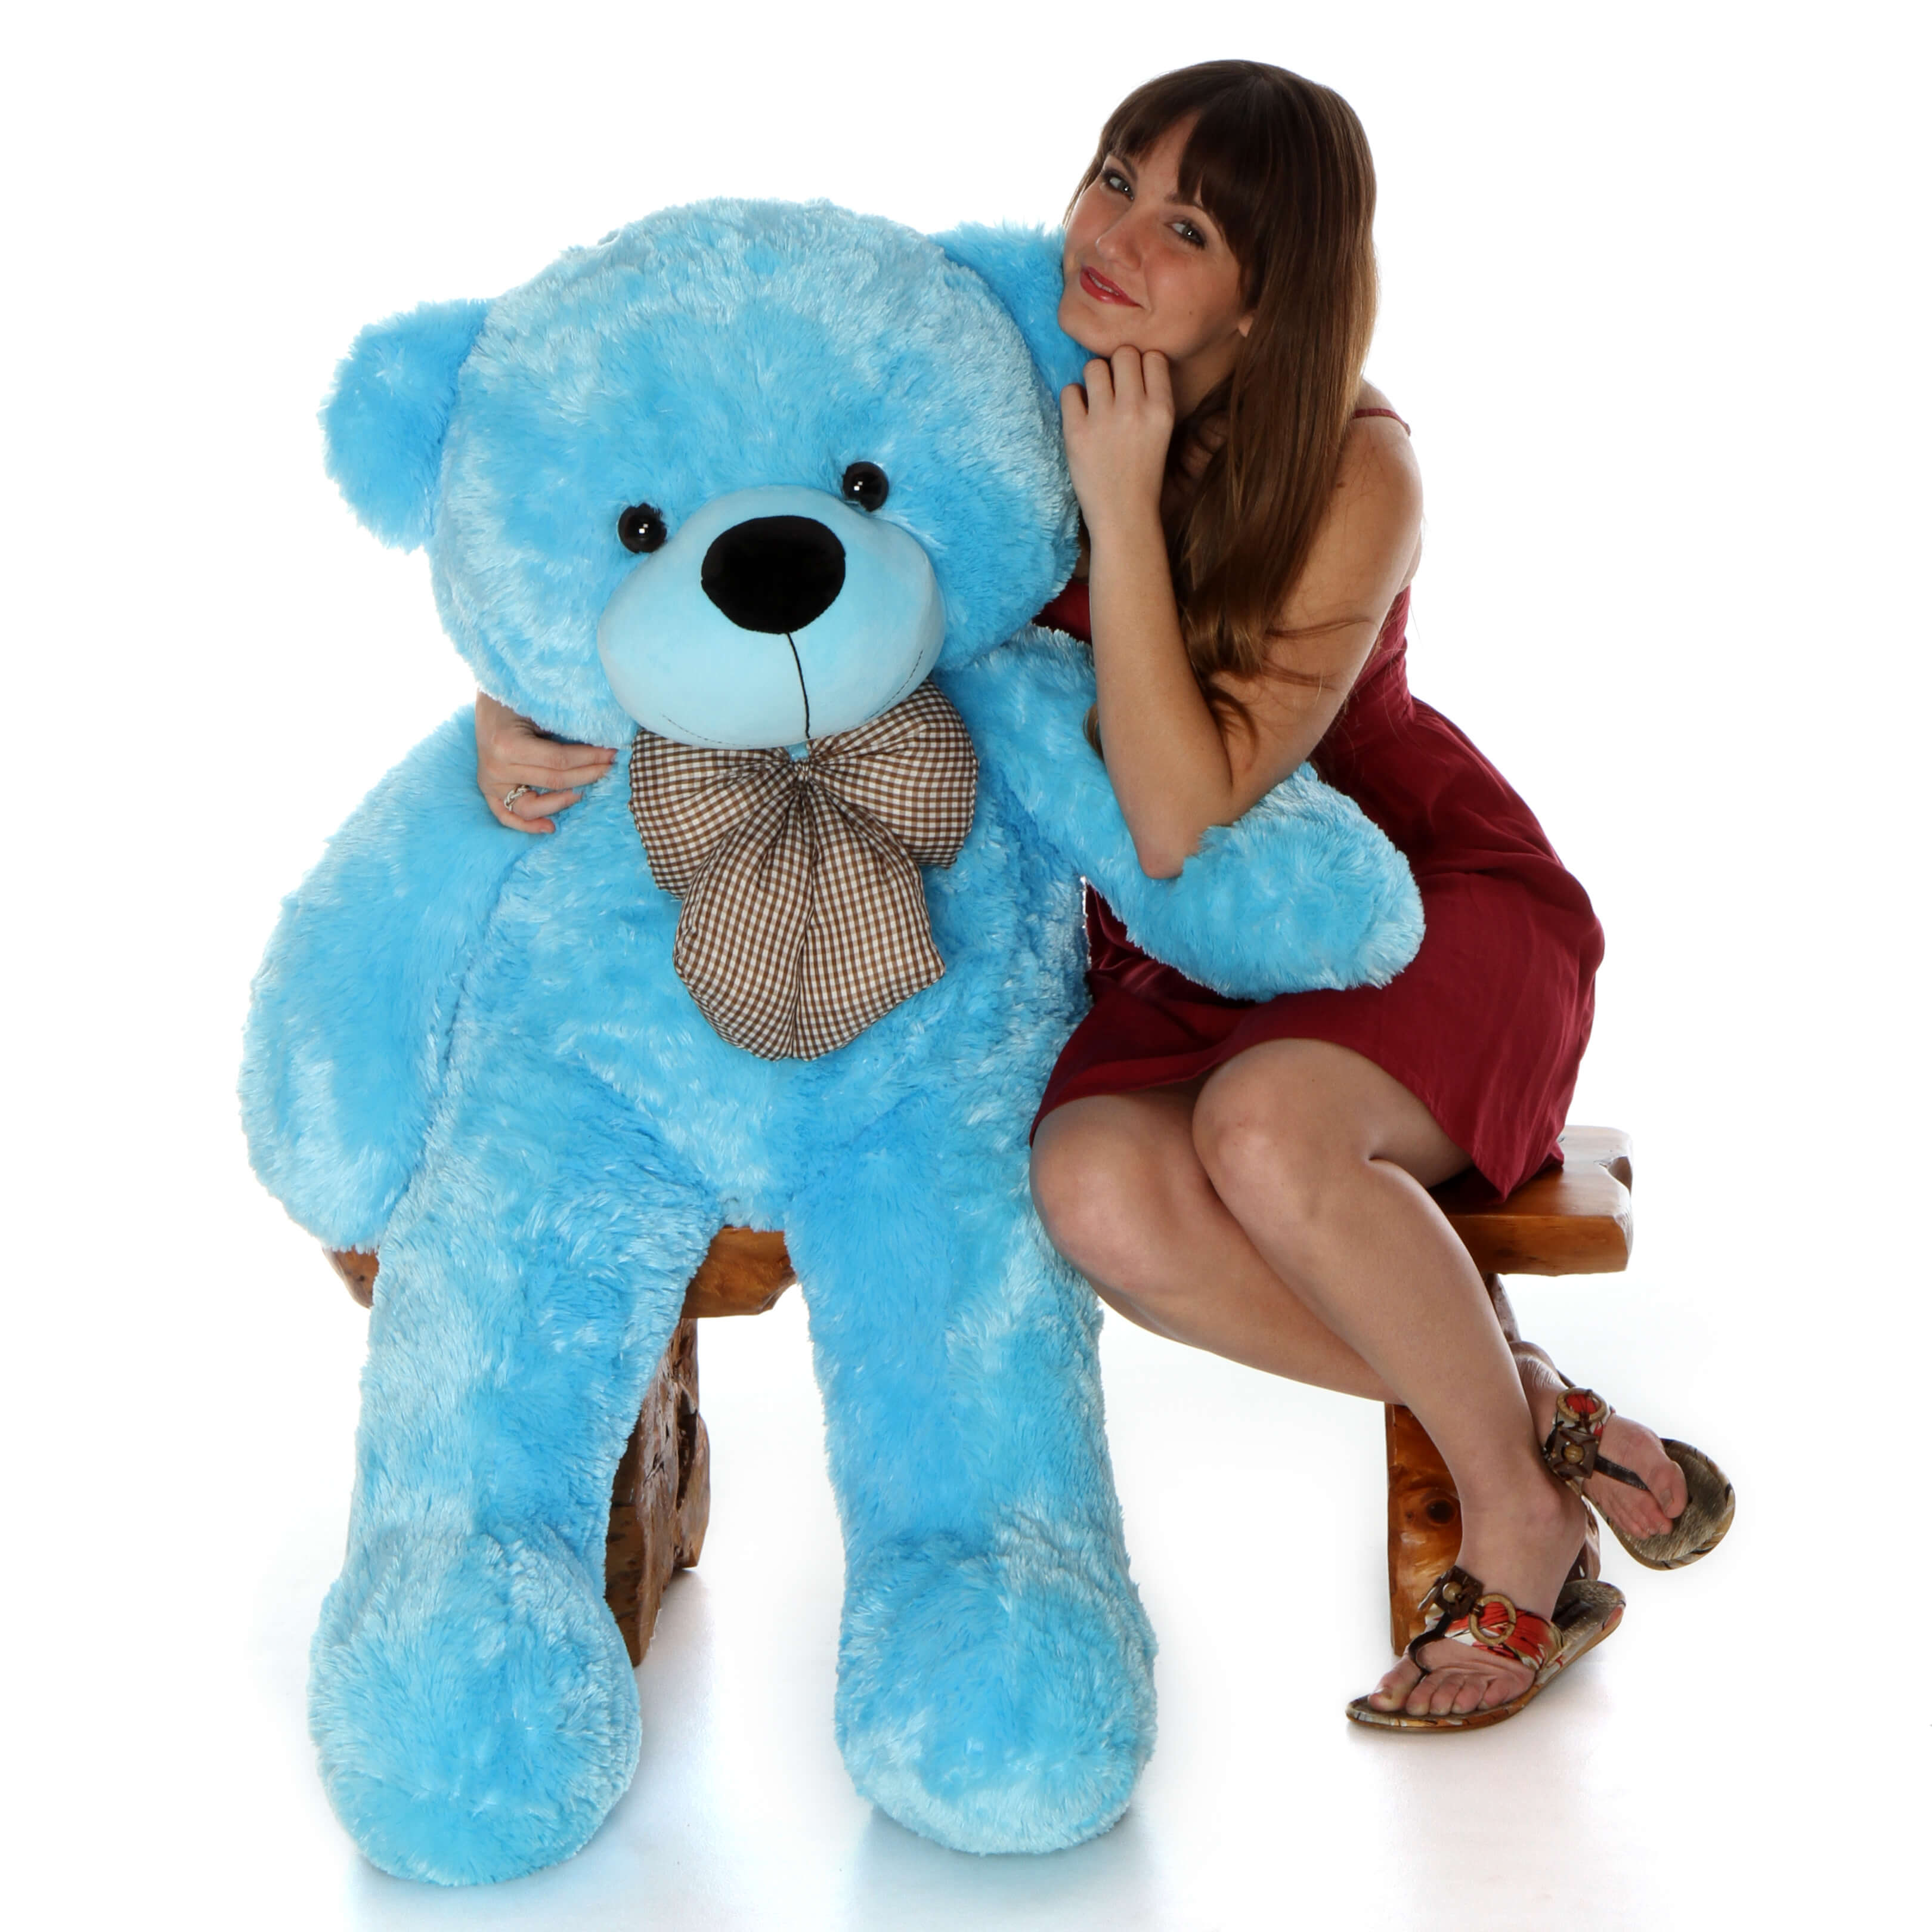 life-size-blue-teddy-bear-happy-cuddles-48in-1.jpg